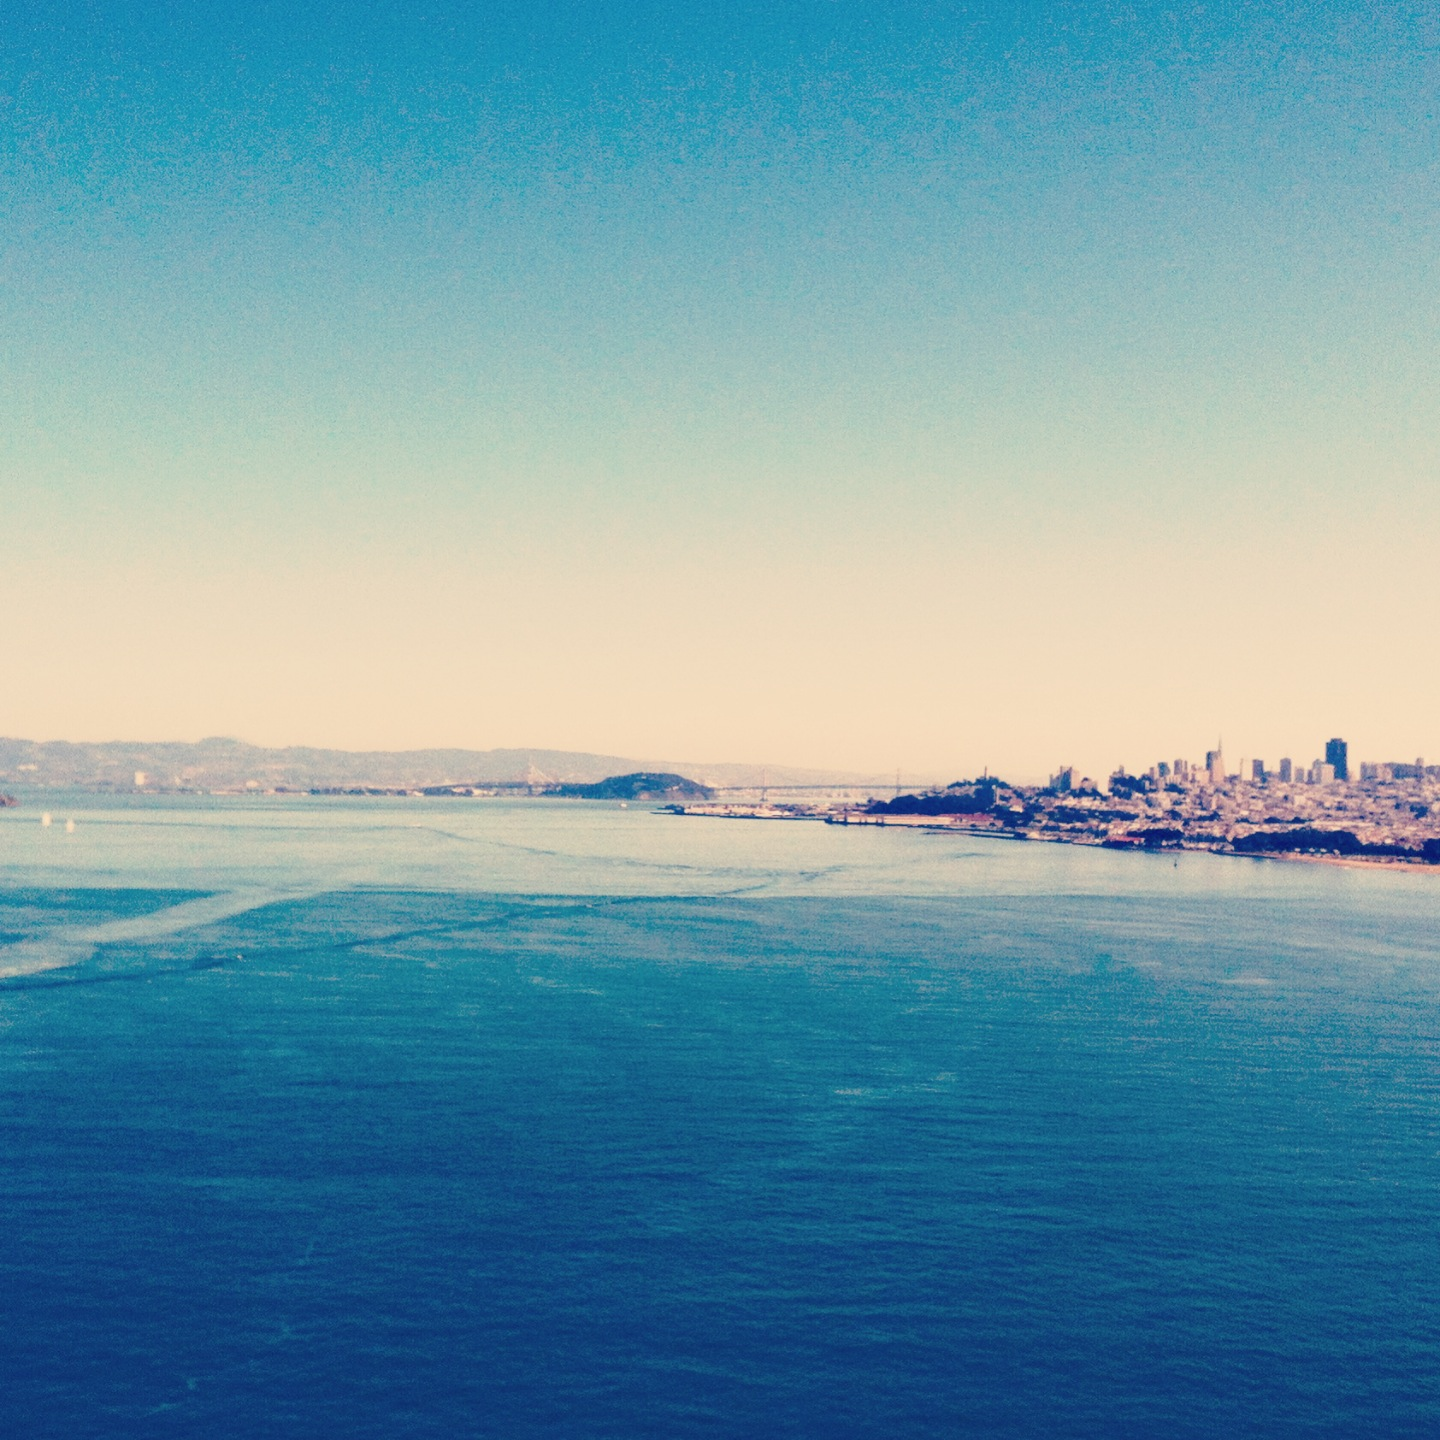 SF from a distance on a pretty day.